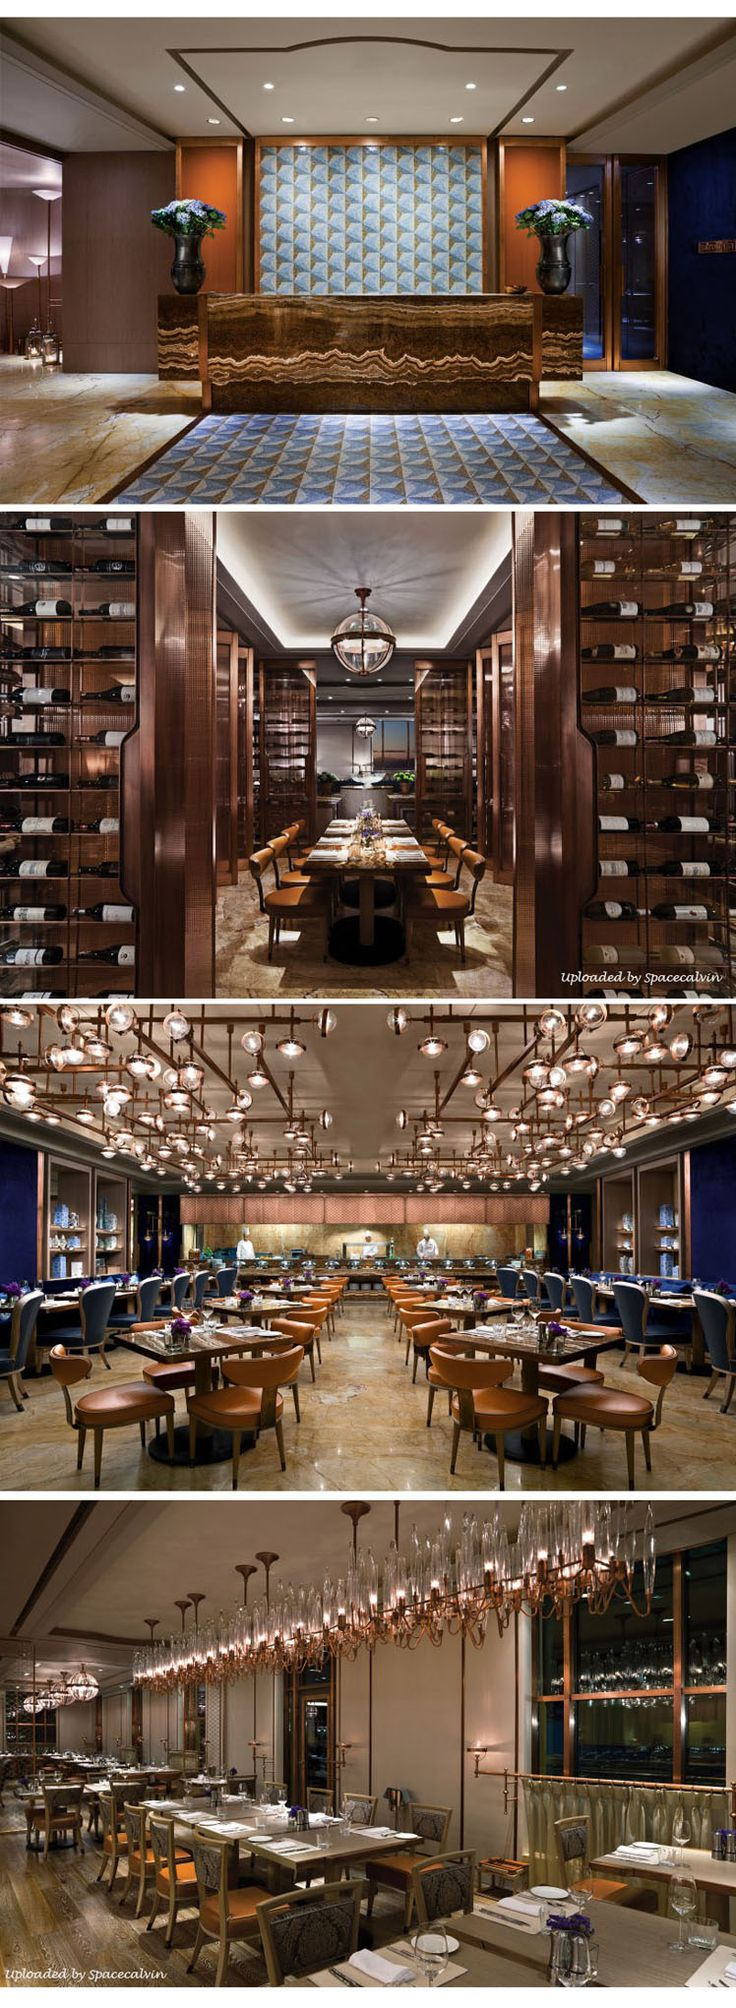 IST TOO, SHANGRI-LA ISTANBUL 2013_Restaurant at the Shangri-la Hotel Istanbul, IST TOO is Designed by Architect Andre Fu of AFSO